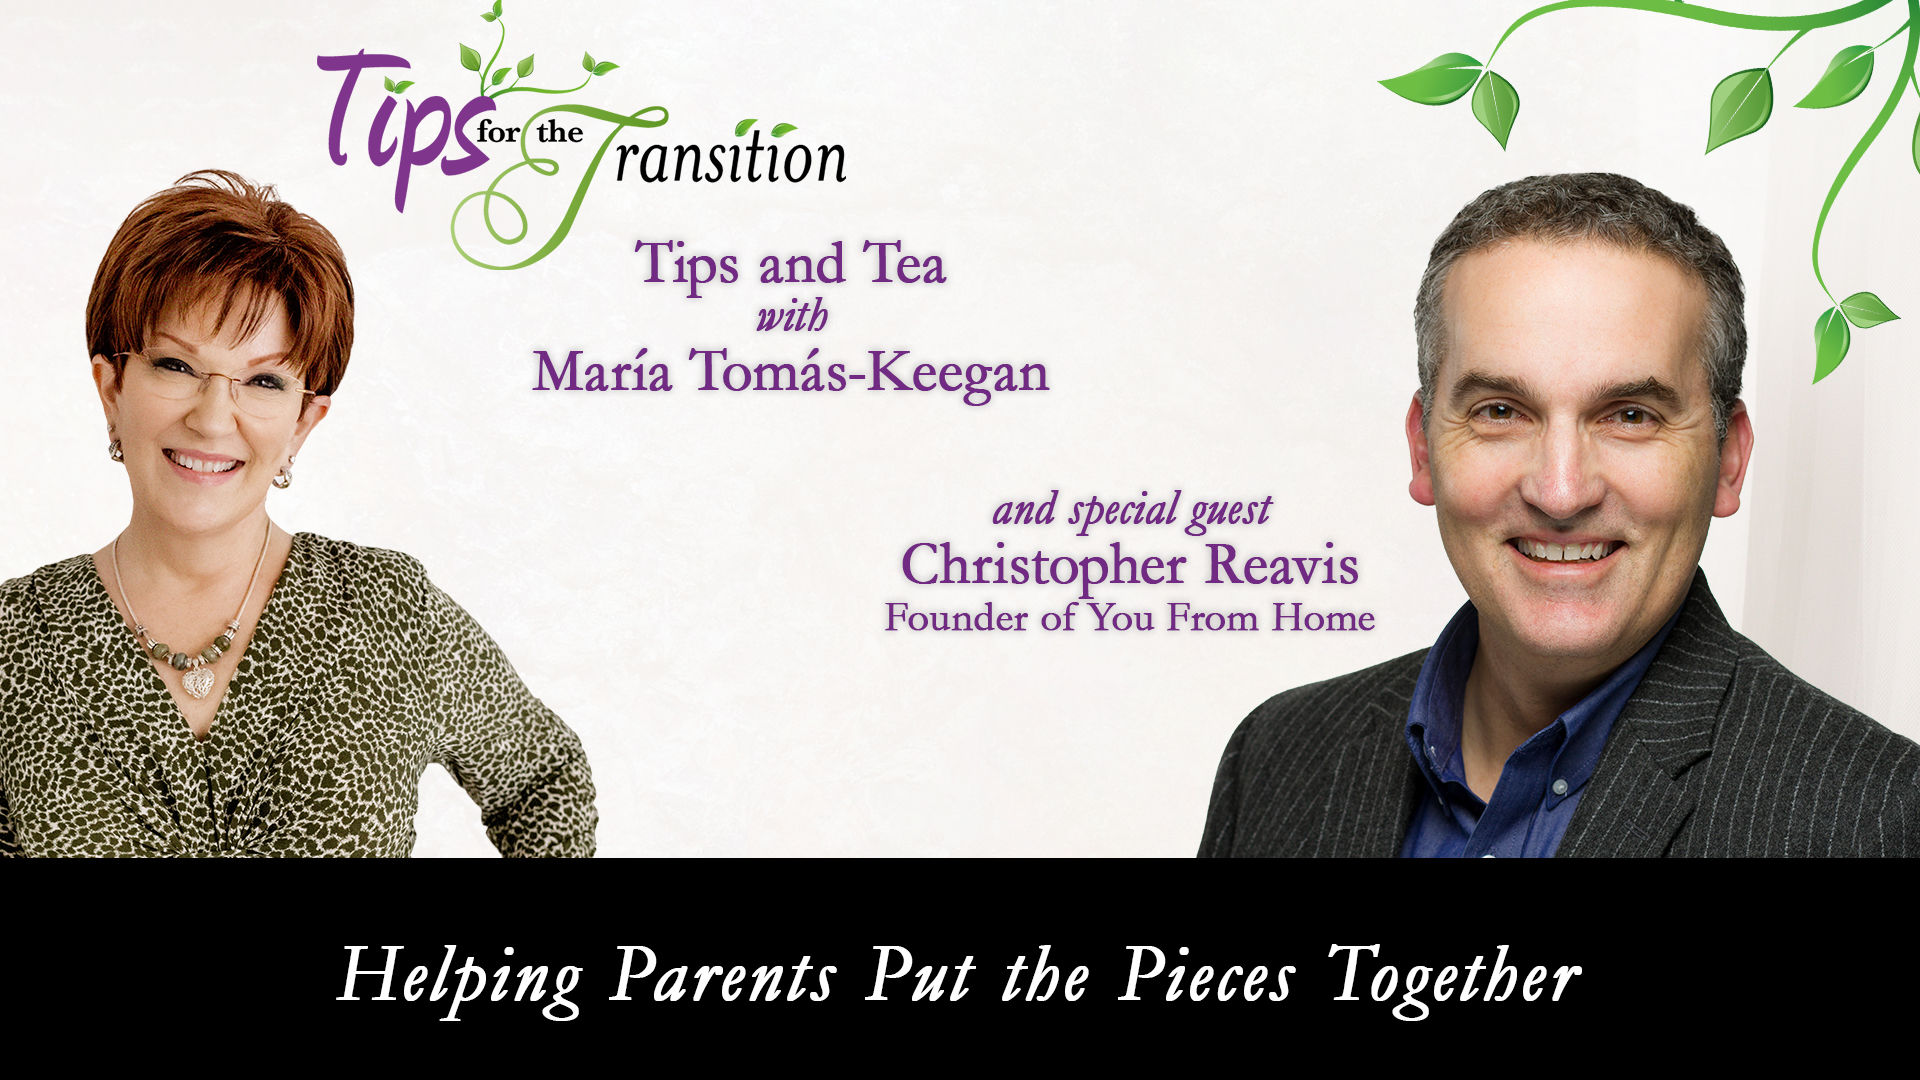 Helping Parents Put the Pieces Together